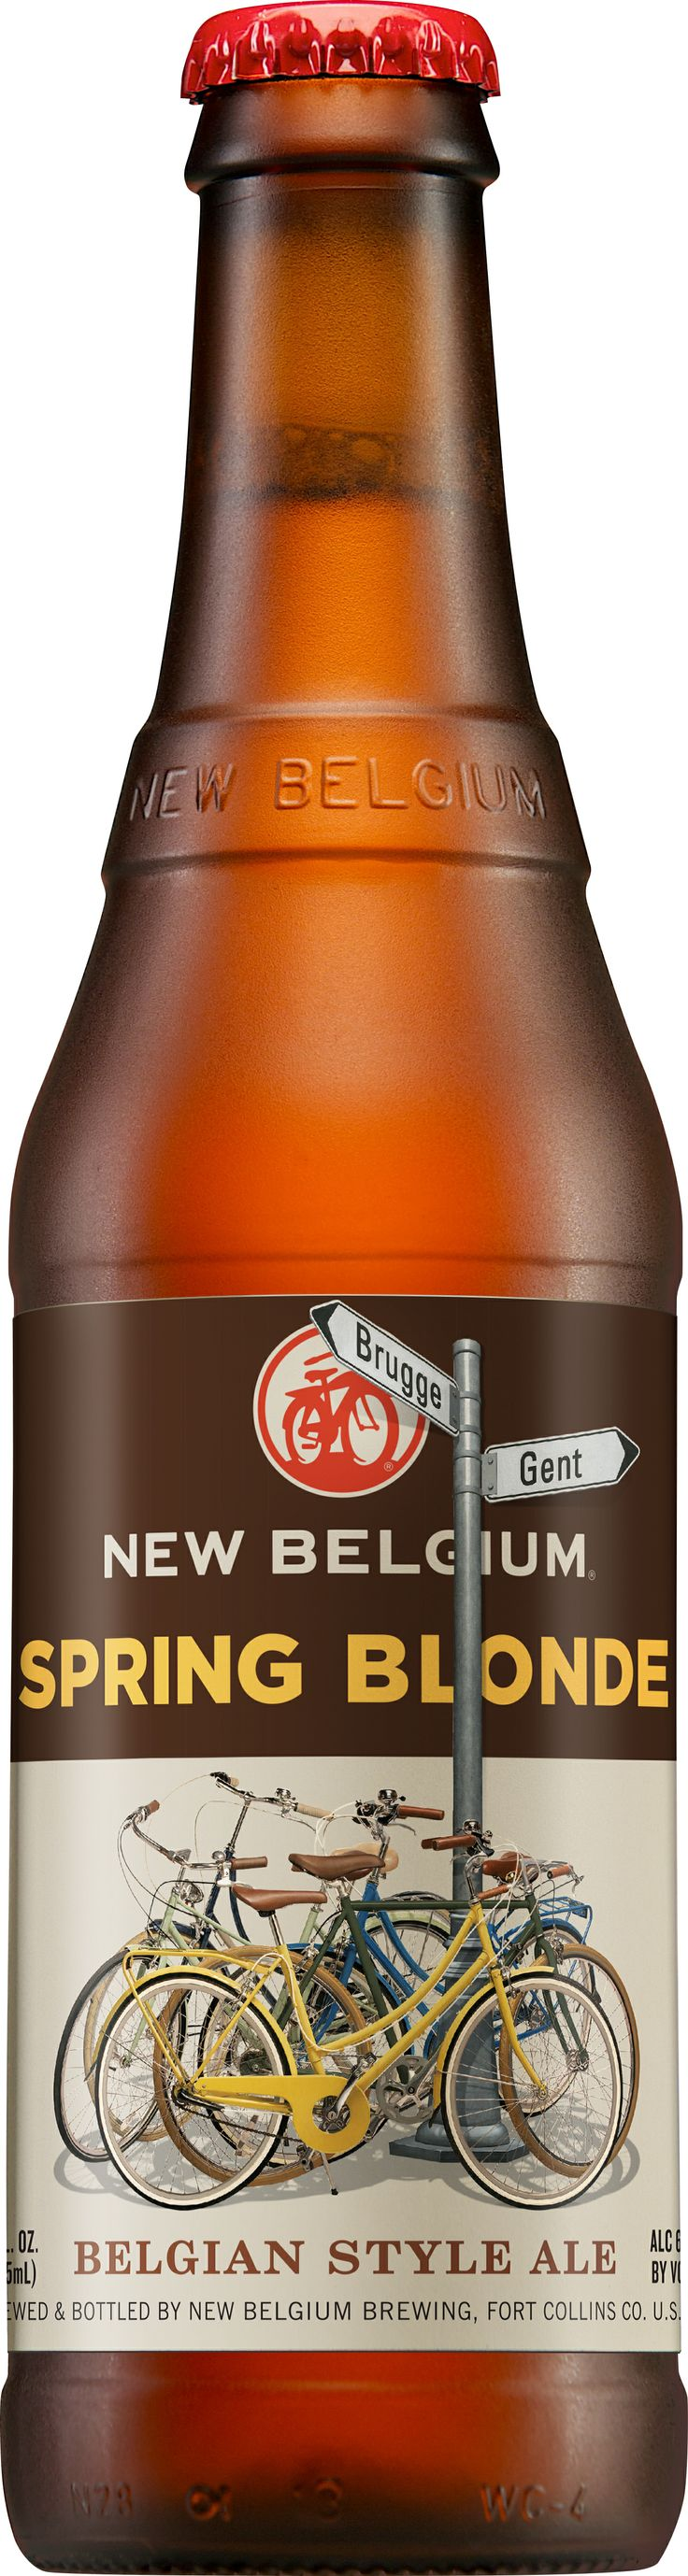 New Belgium Spring Blonde. Blondes are a favorite style among New Belgium employee-owners who have celebrated their 5-year anniversary with a spring trip to Belgium. These travels inspired our Spring Blonde and brought some old Belgium to New Belgium. Brewed with pale and Munich malts, this golden ale pours bright copper and holds a strong, white head aloft. A nose of lemon peel, pepper, and fresh baked bread entice a sipping